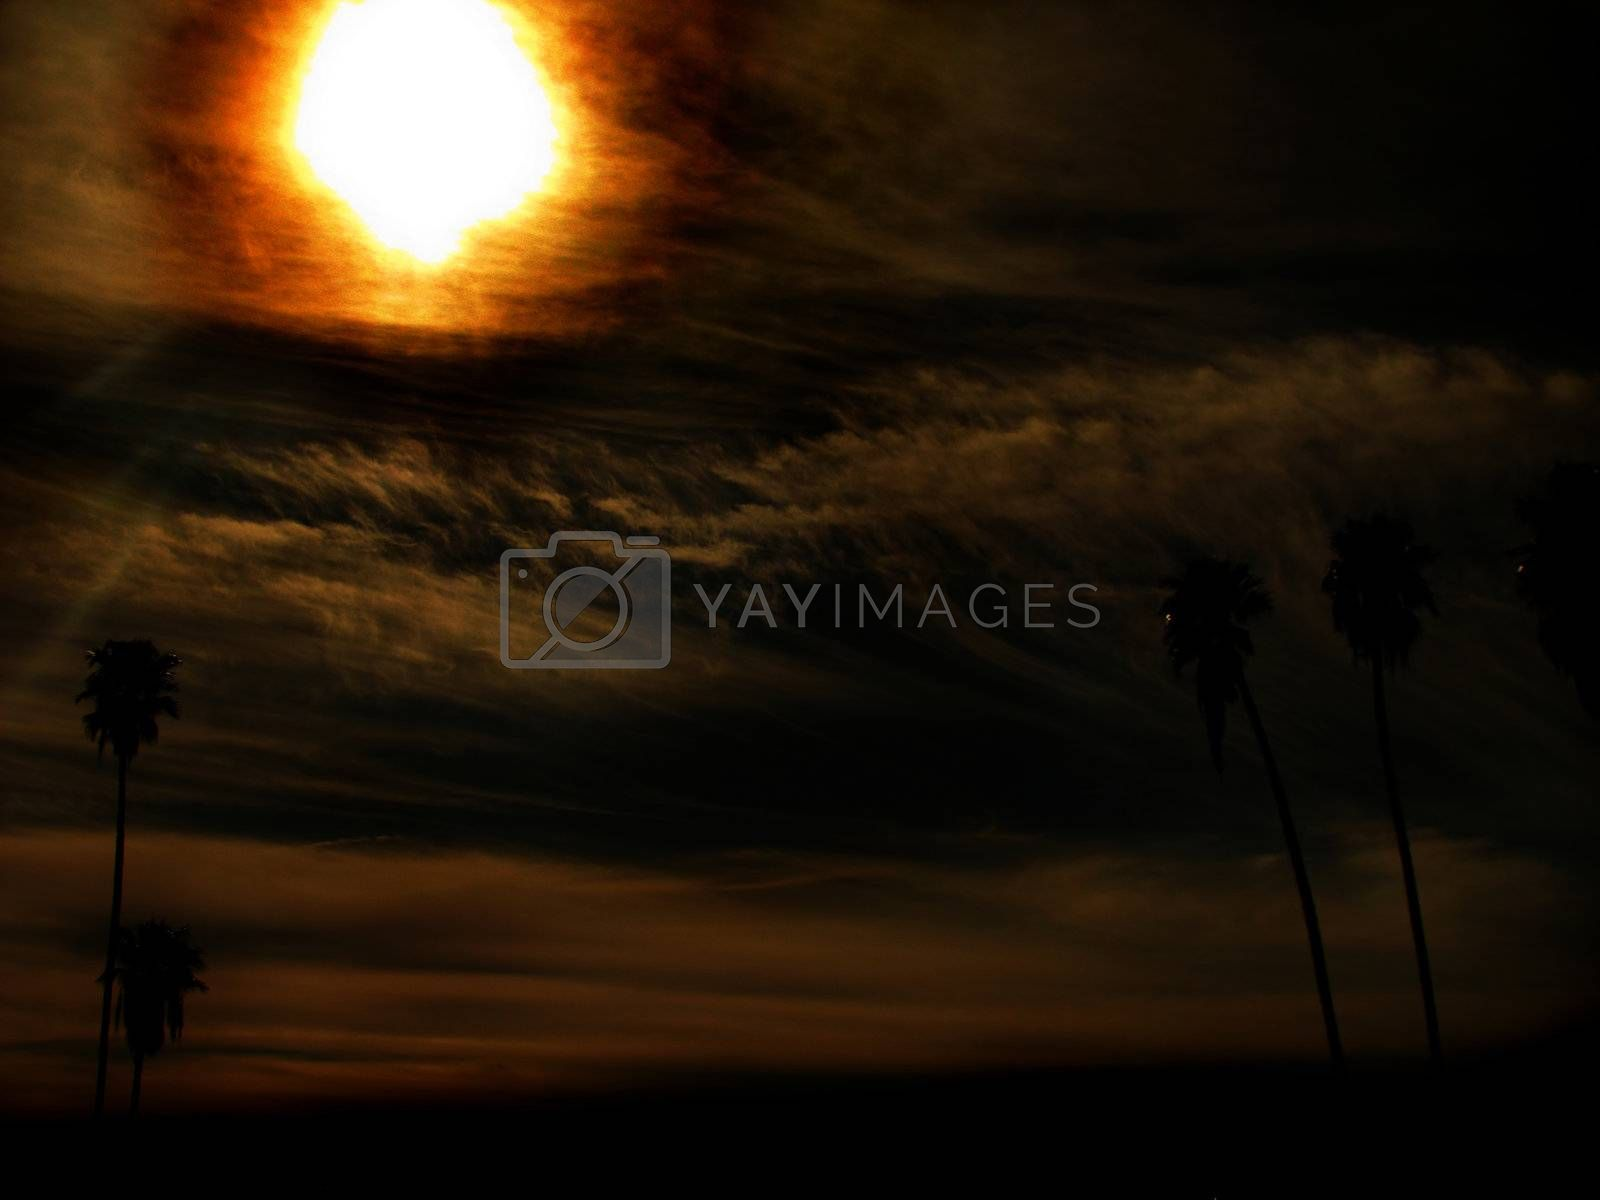 Royalty free image of Paradise Sun Burn by mwp1969